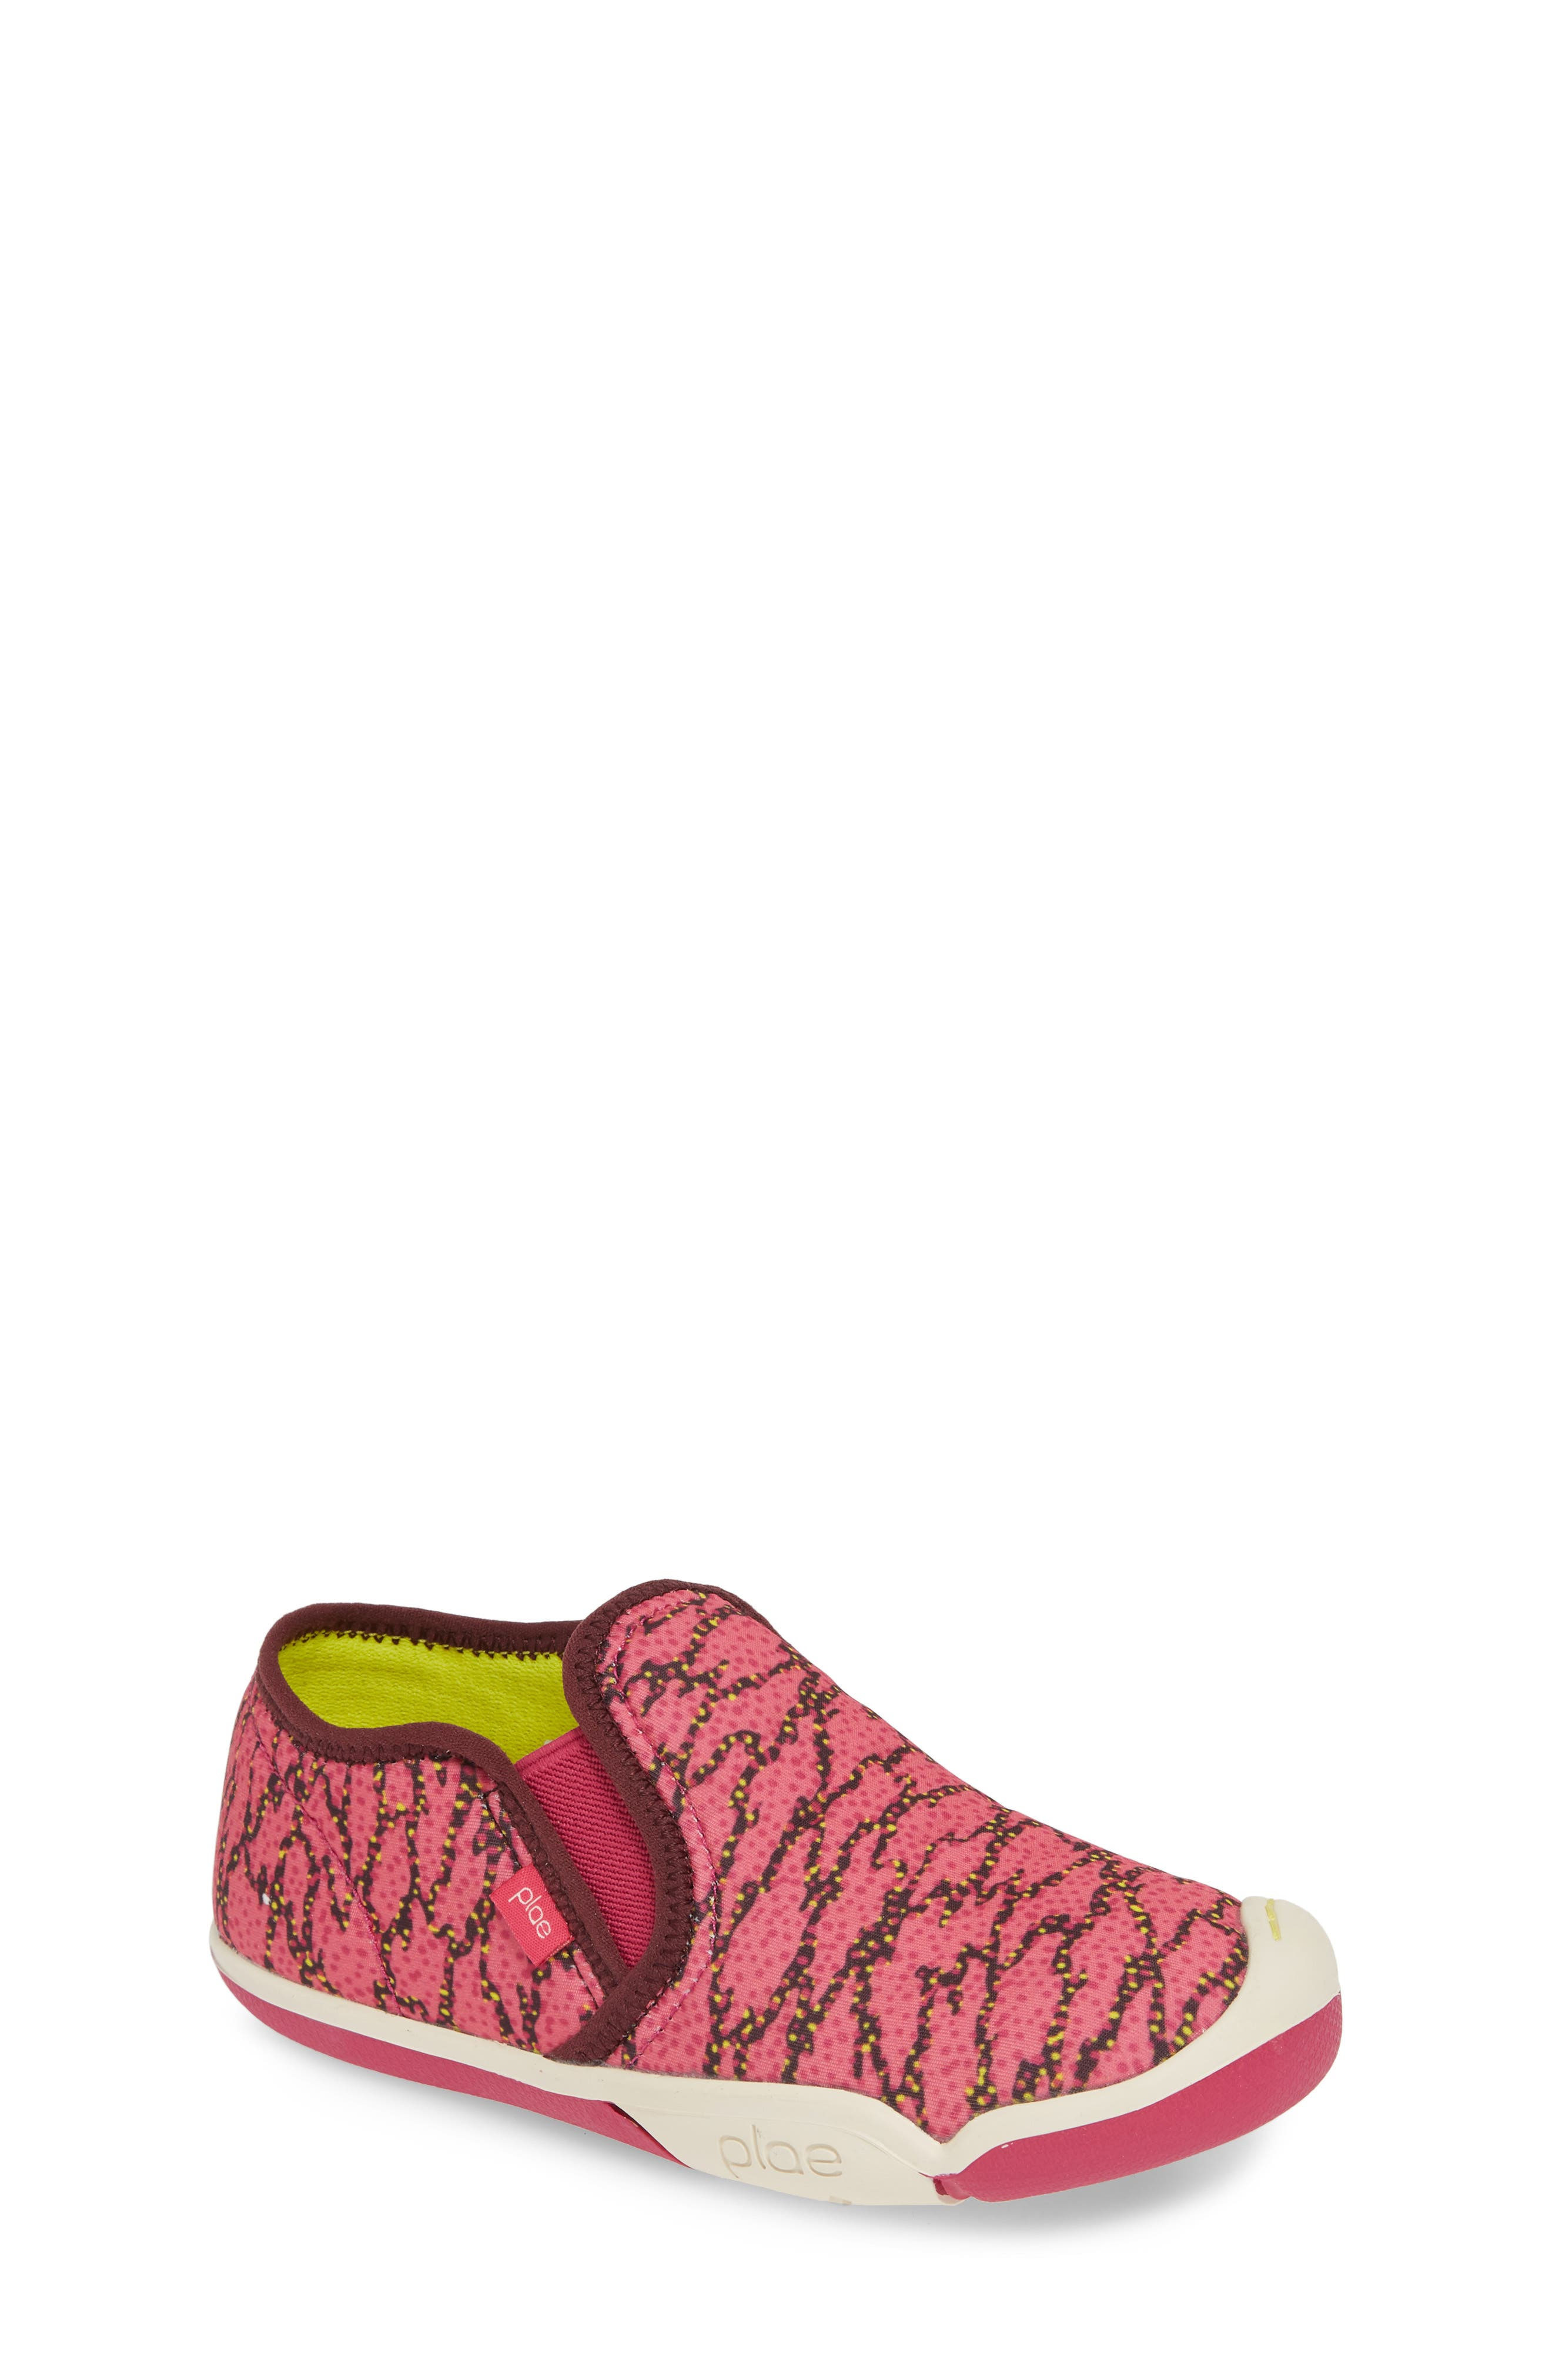 PLAE Shoes for Kids  3369f6cad